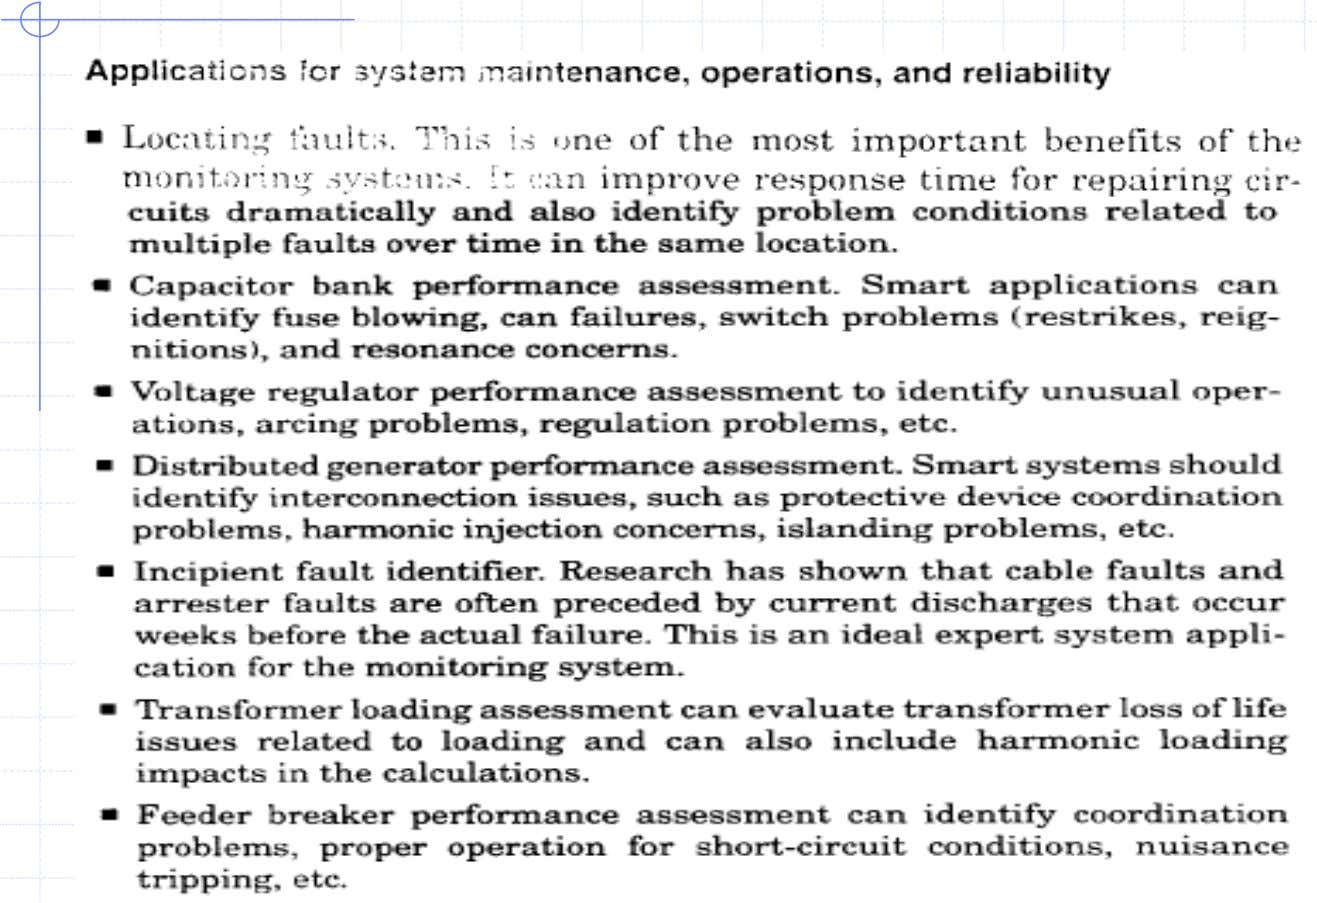 Application for System Main. Optn. and reliability